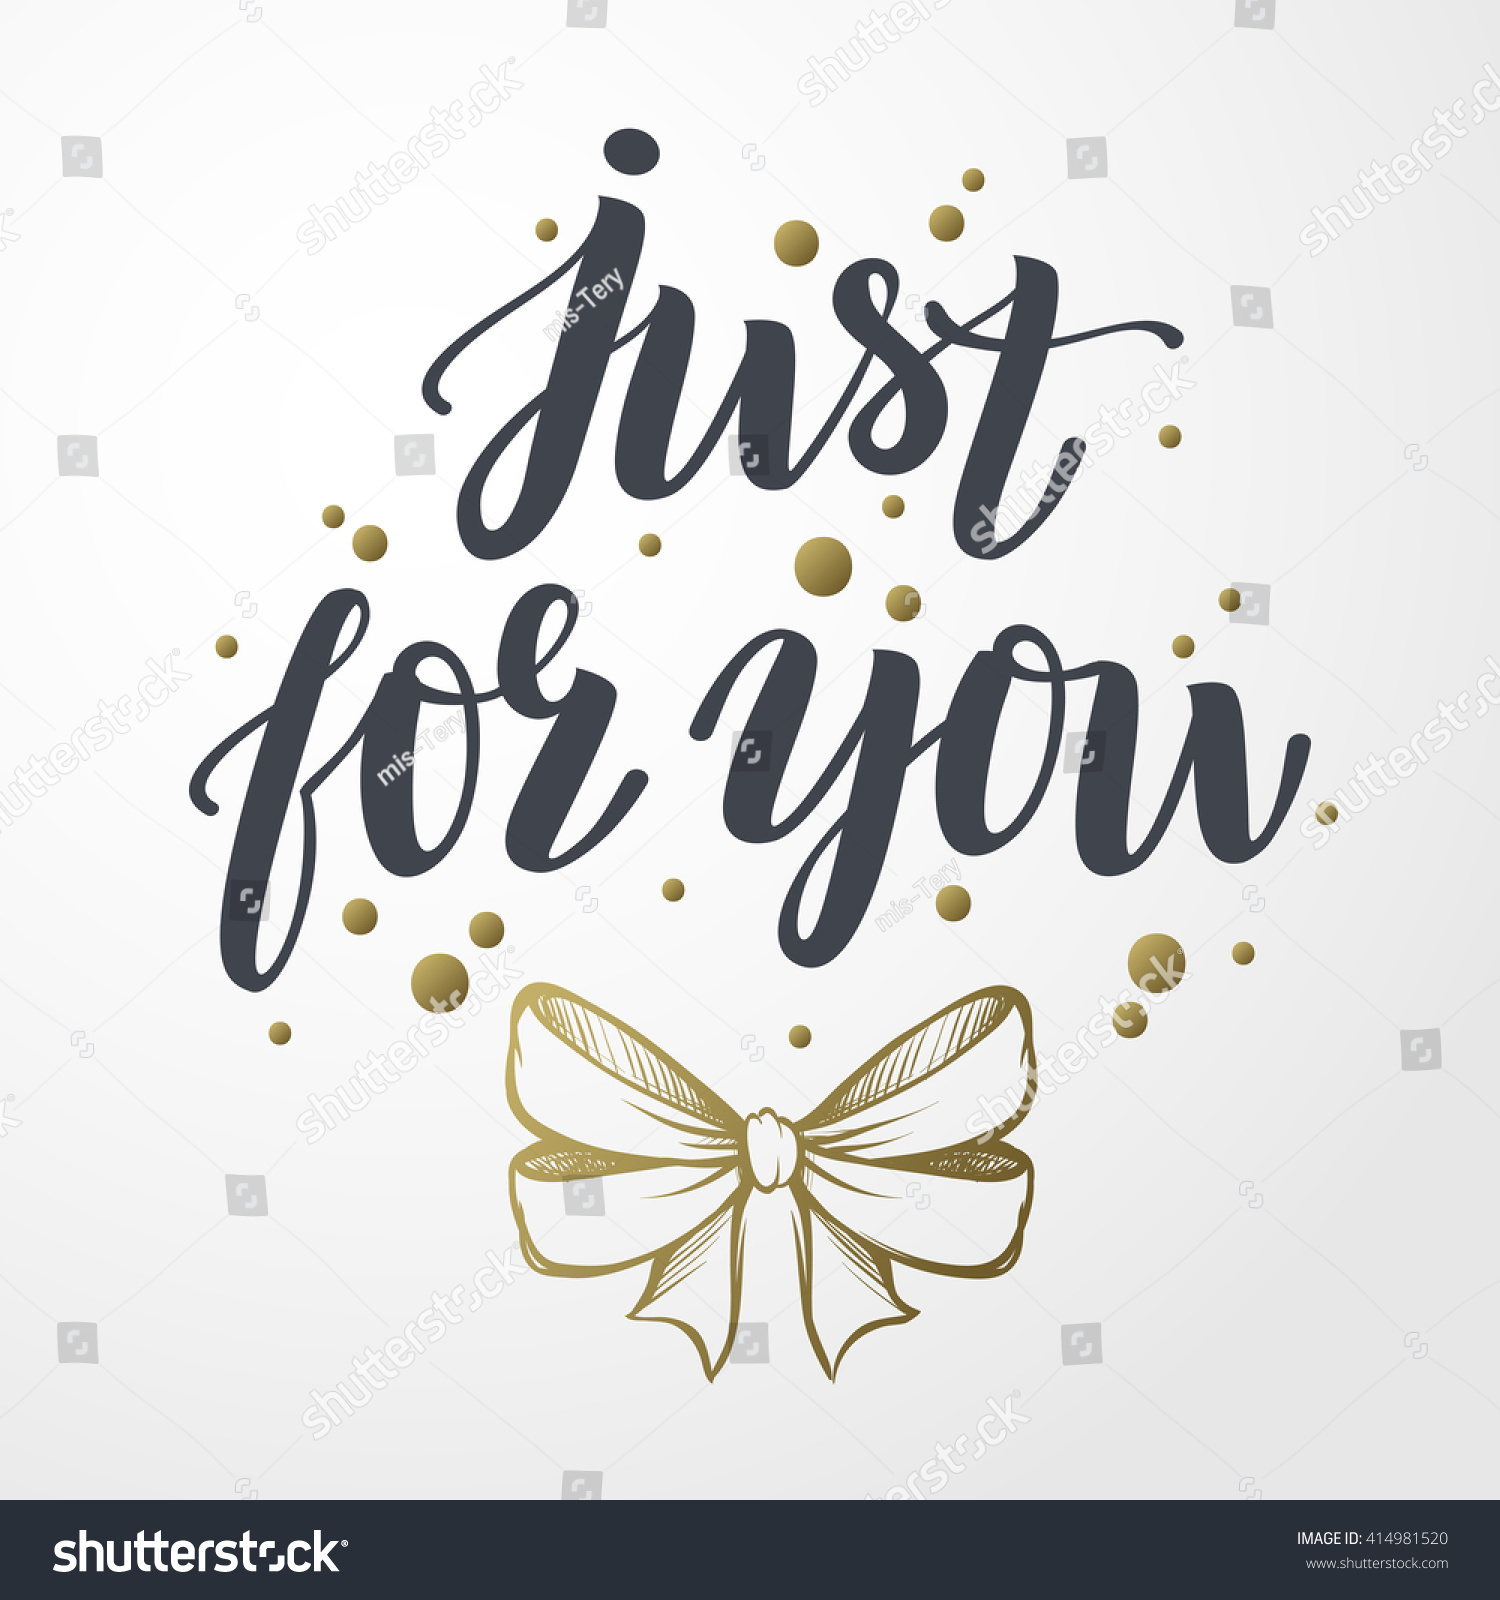 Just you vector text gold bow stock vector royalty free 414981520 just for you vector text with gold bow illustration hand drawn lettering for m4hsunfo